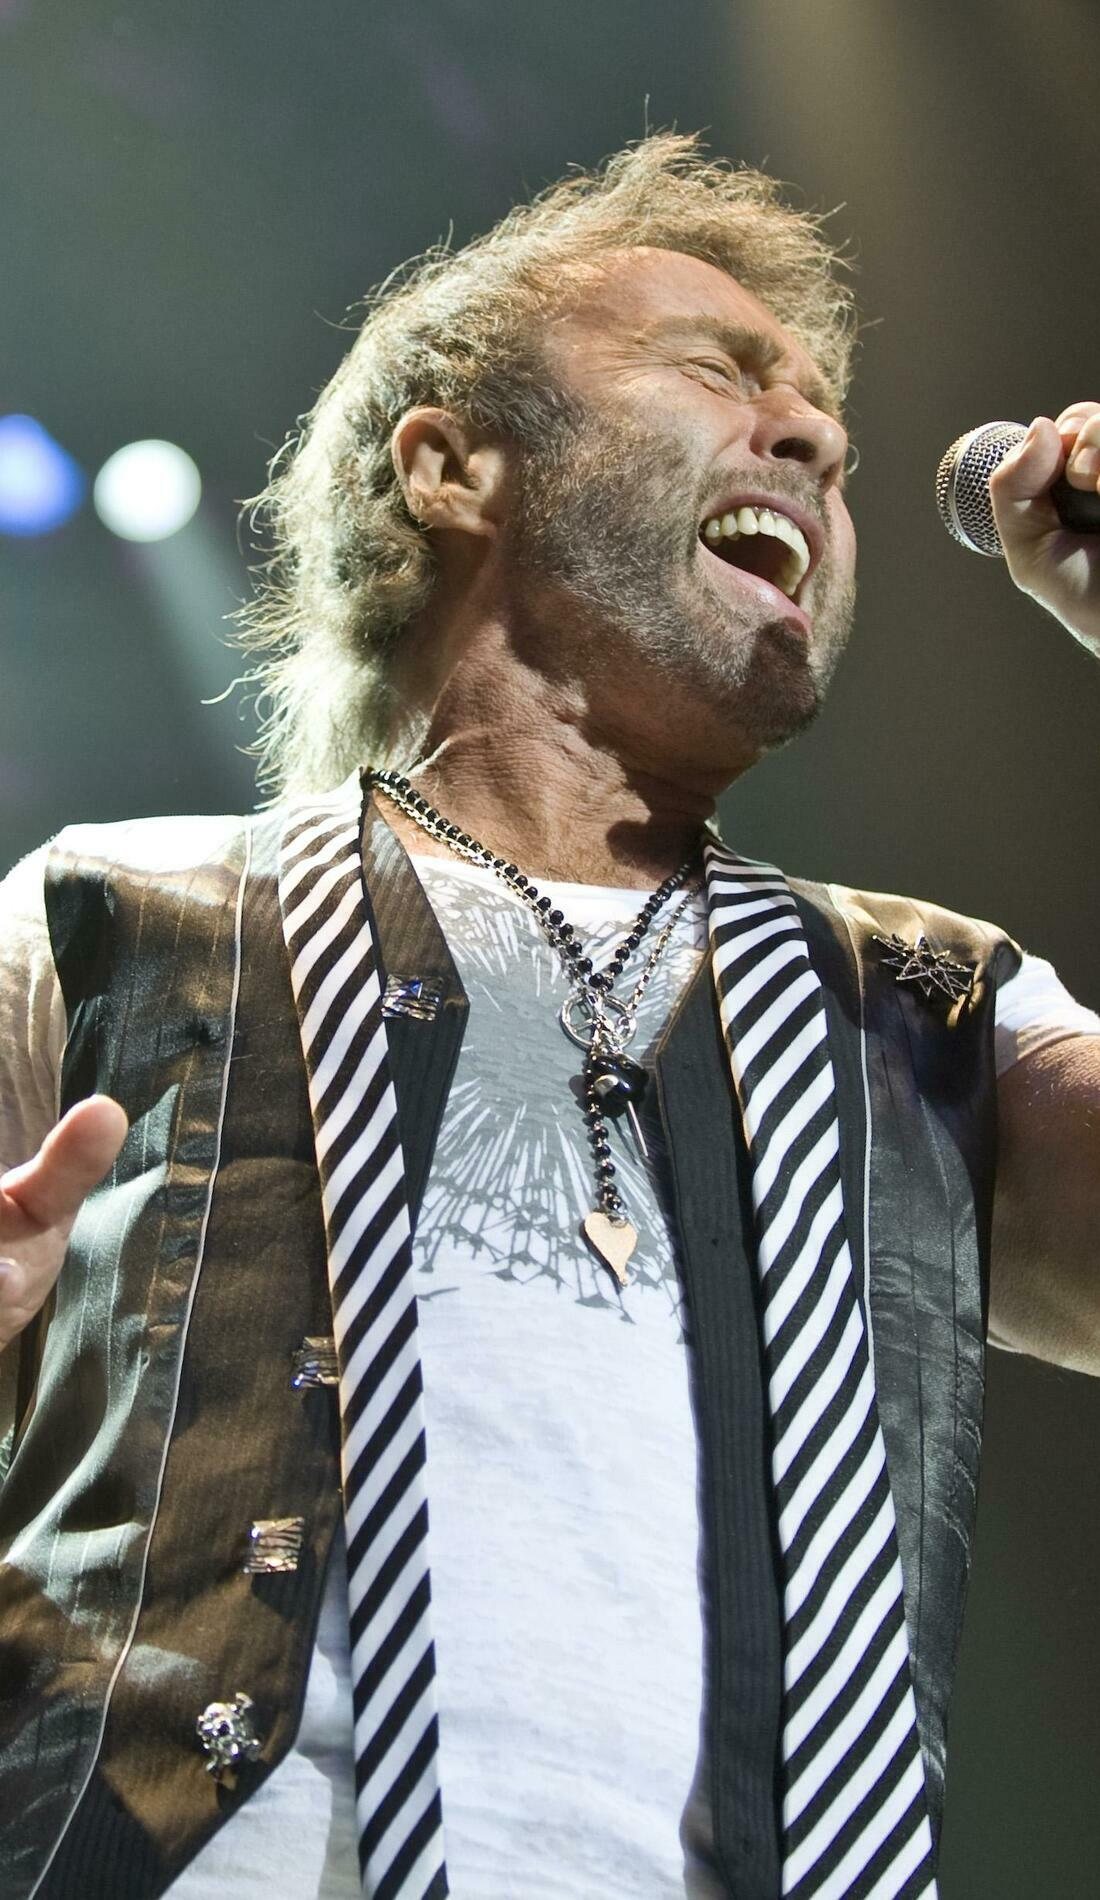 A Paul Rodgers live event